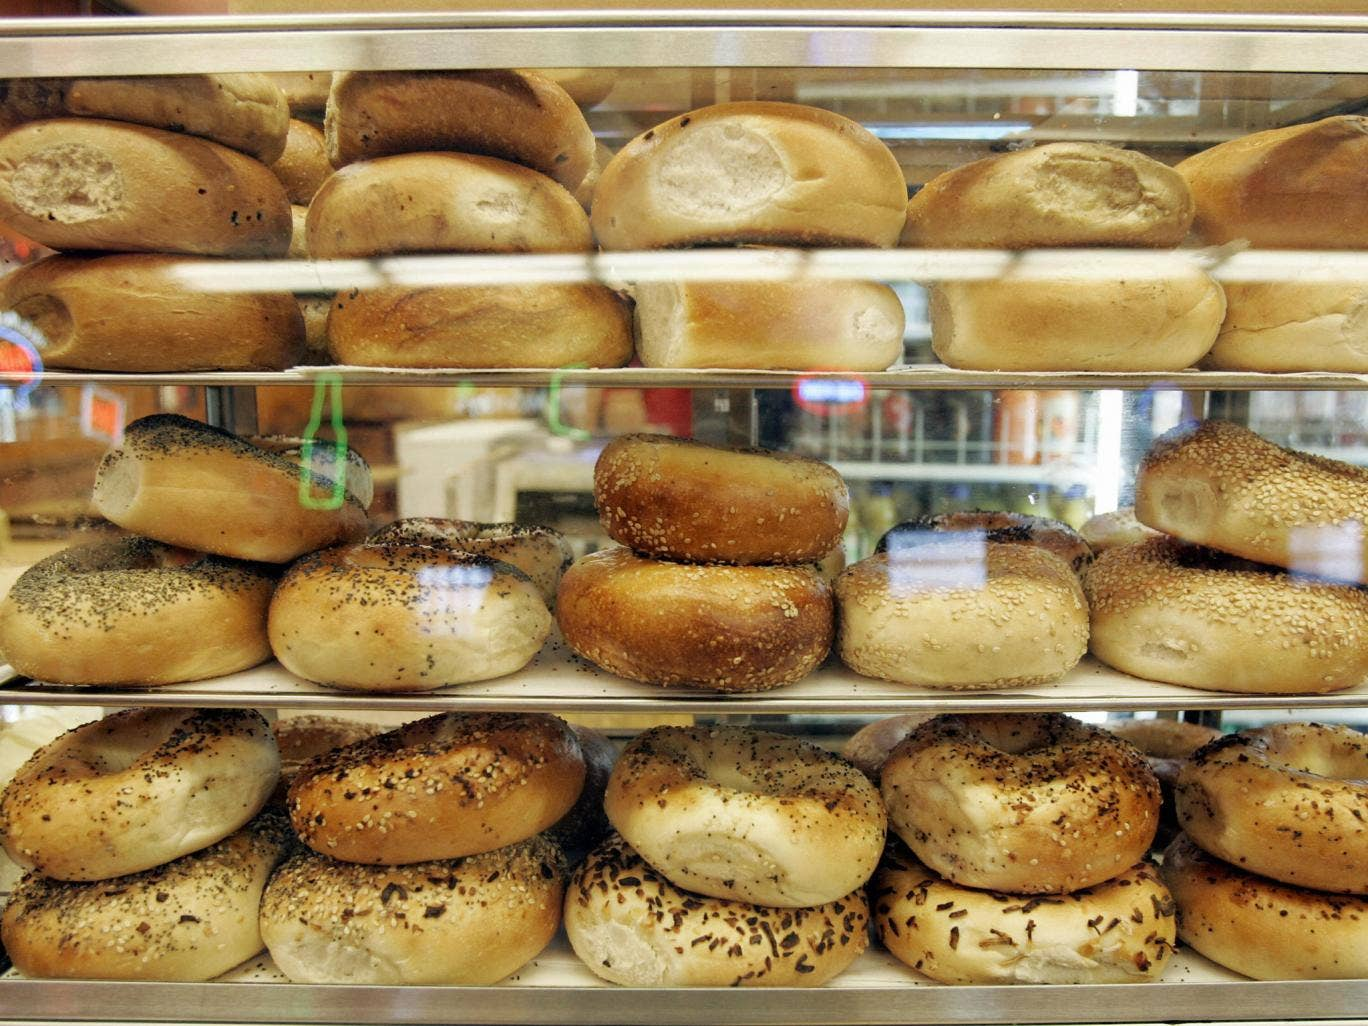 A bagel contains a whole cube of sugar